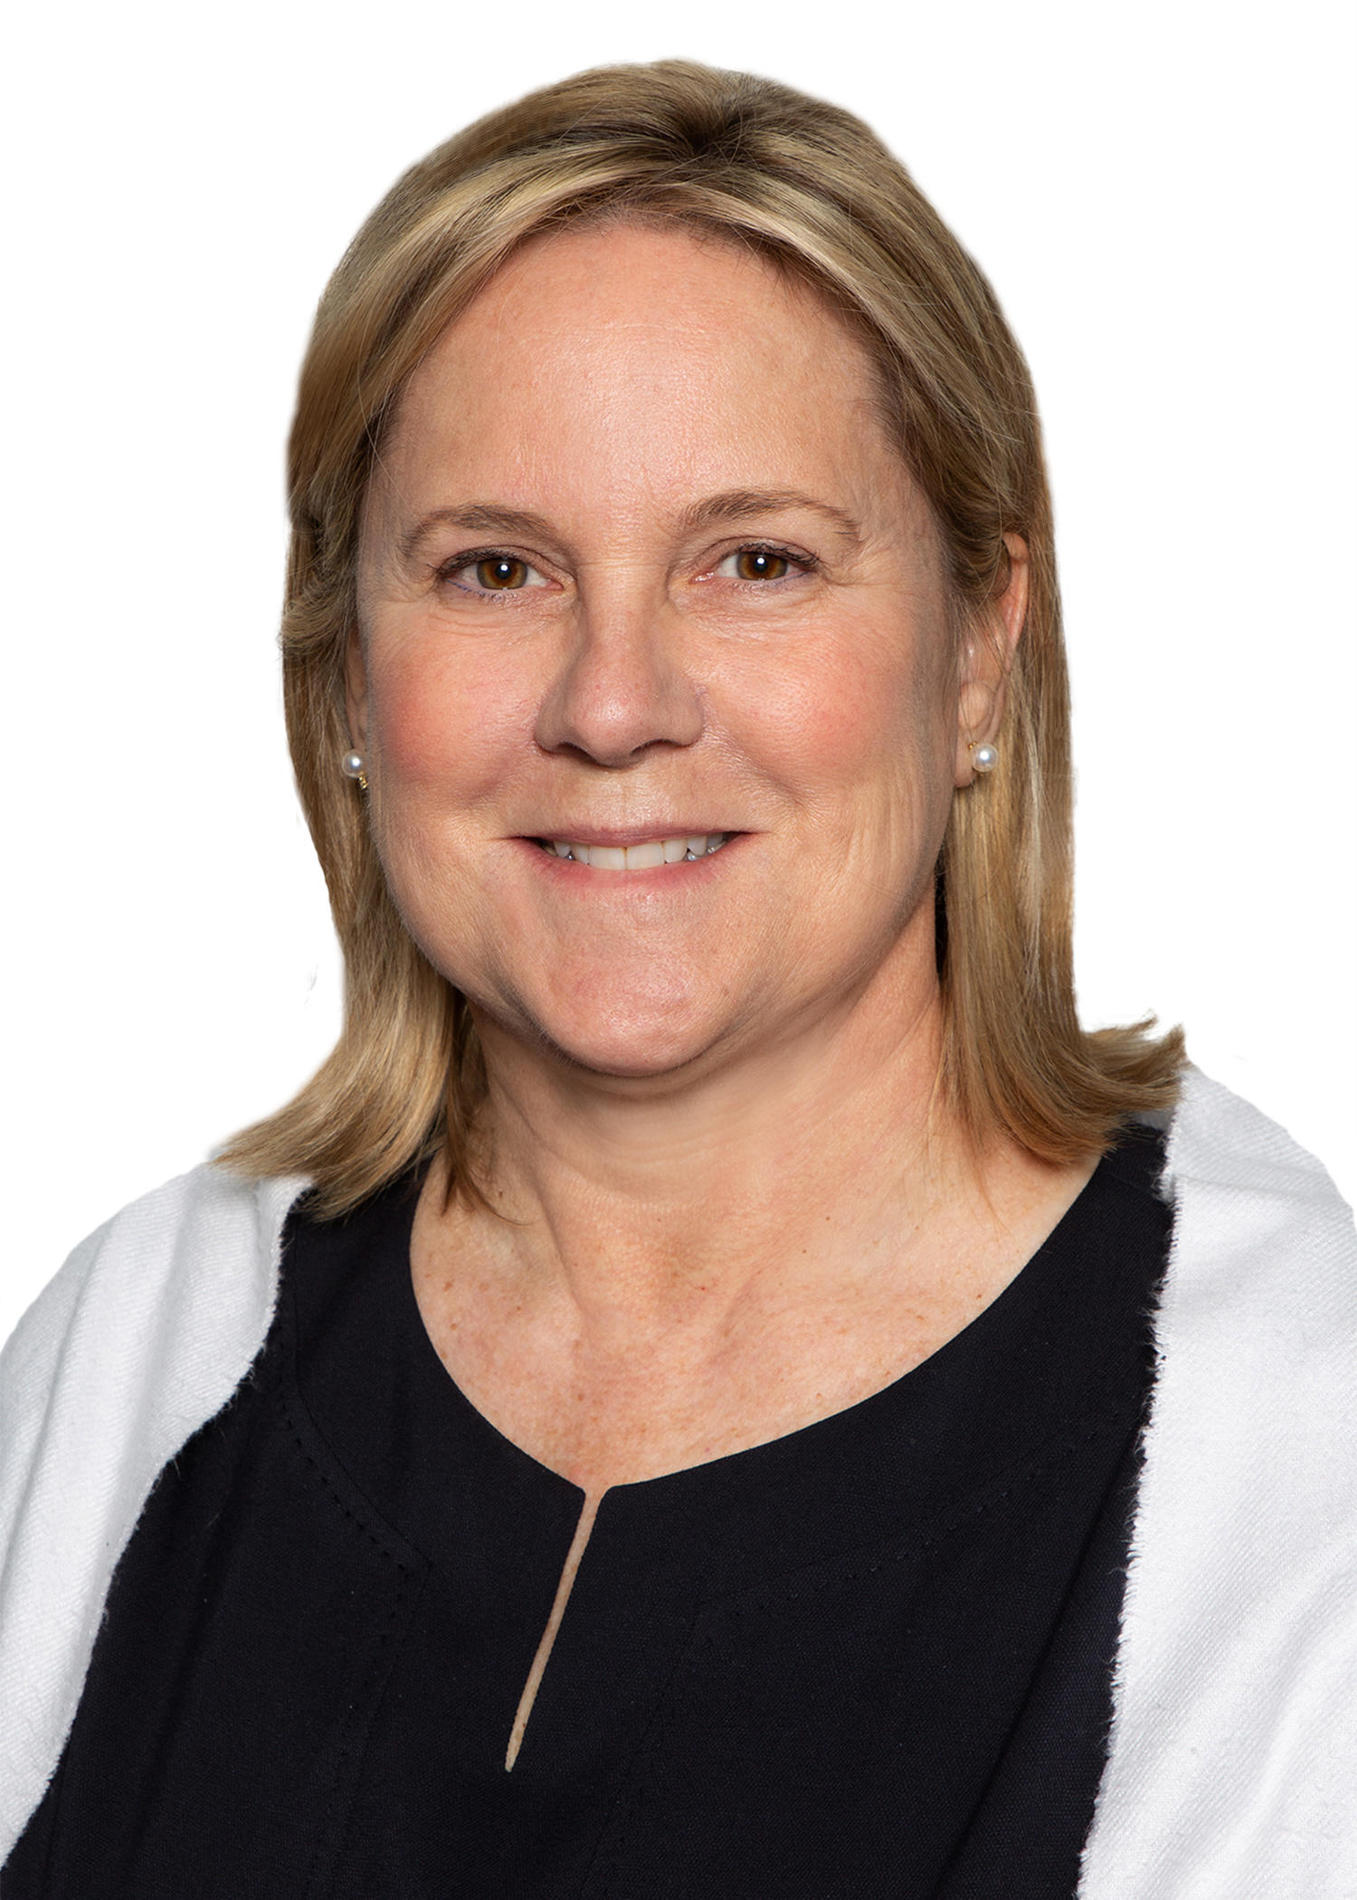 Photo of Amy Mooney - Morgan Stanley